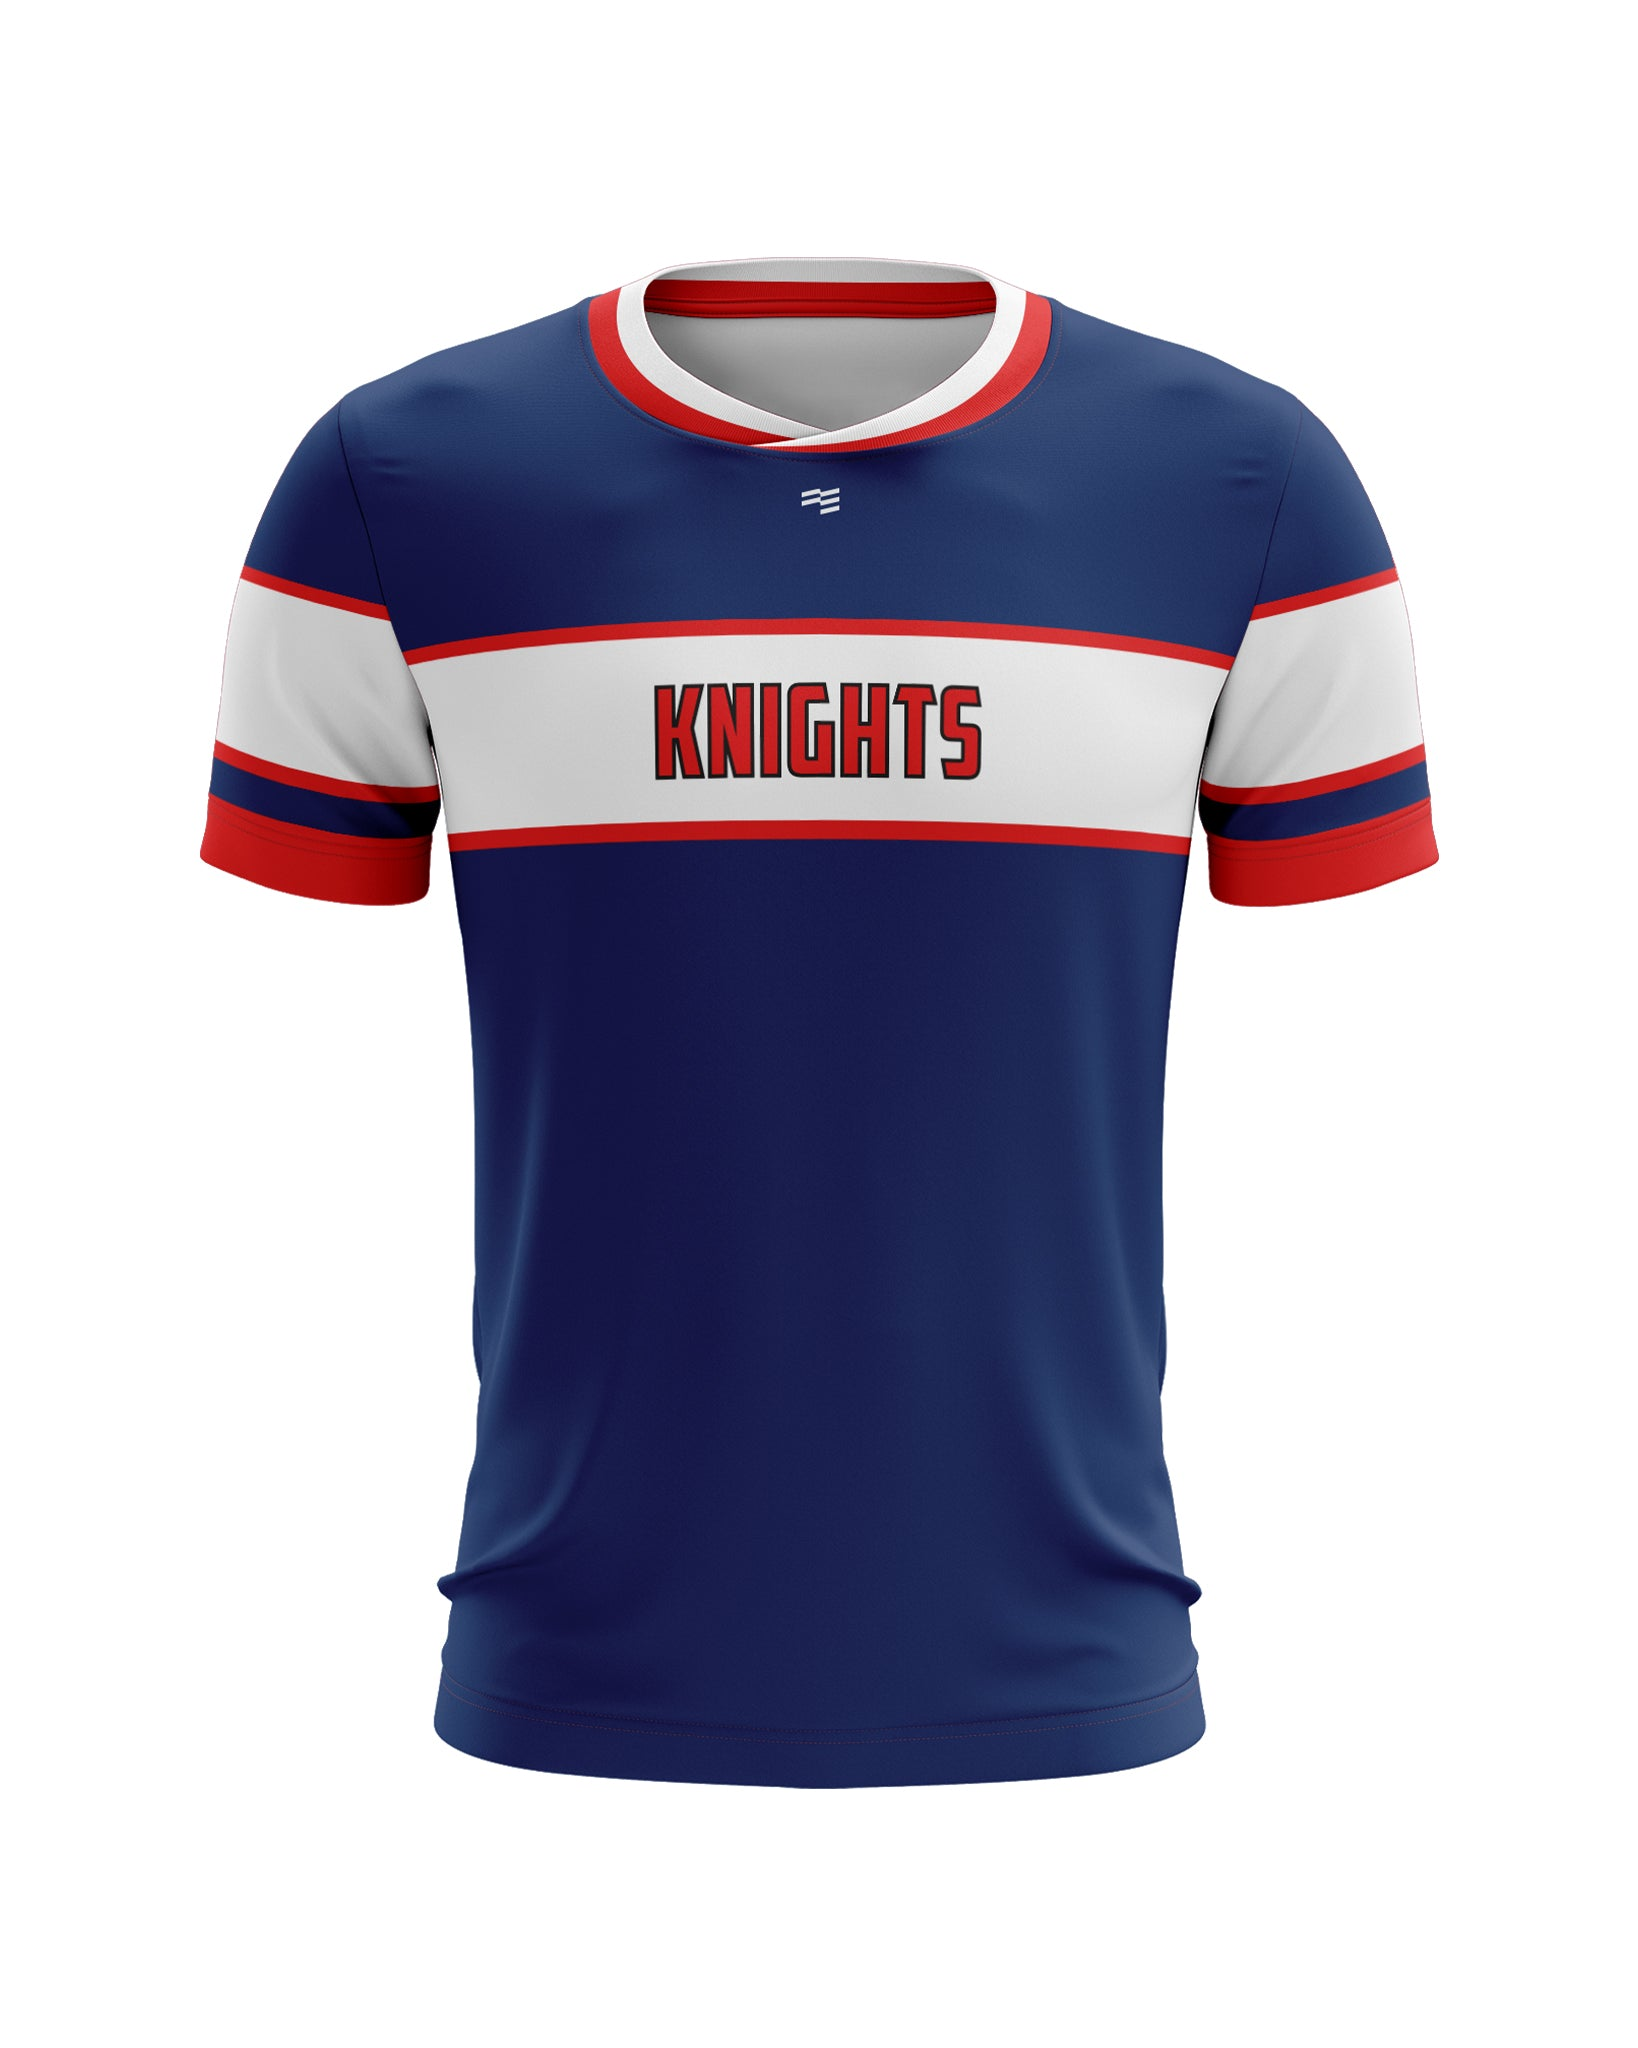 Knights Rugby Jersey - Mens